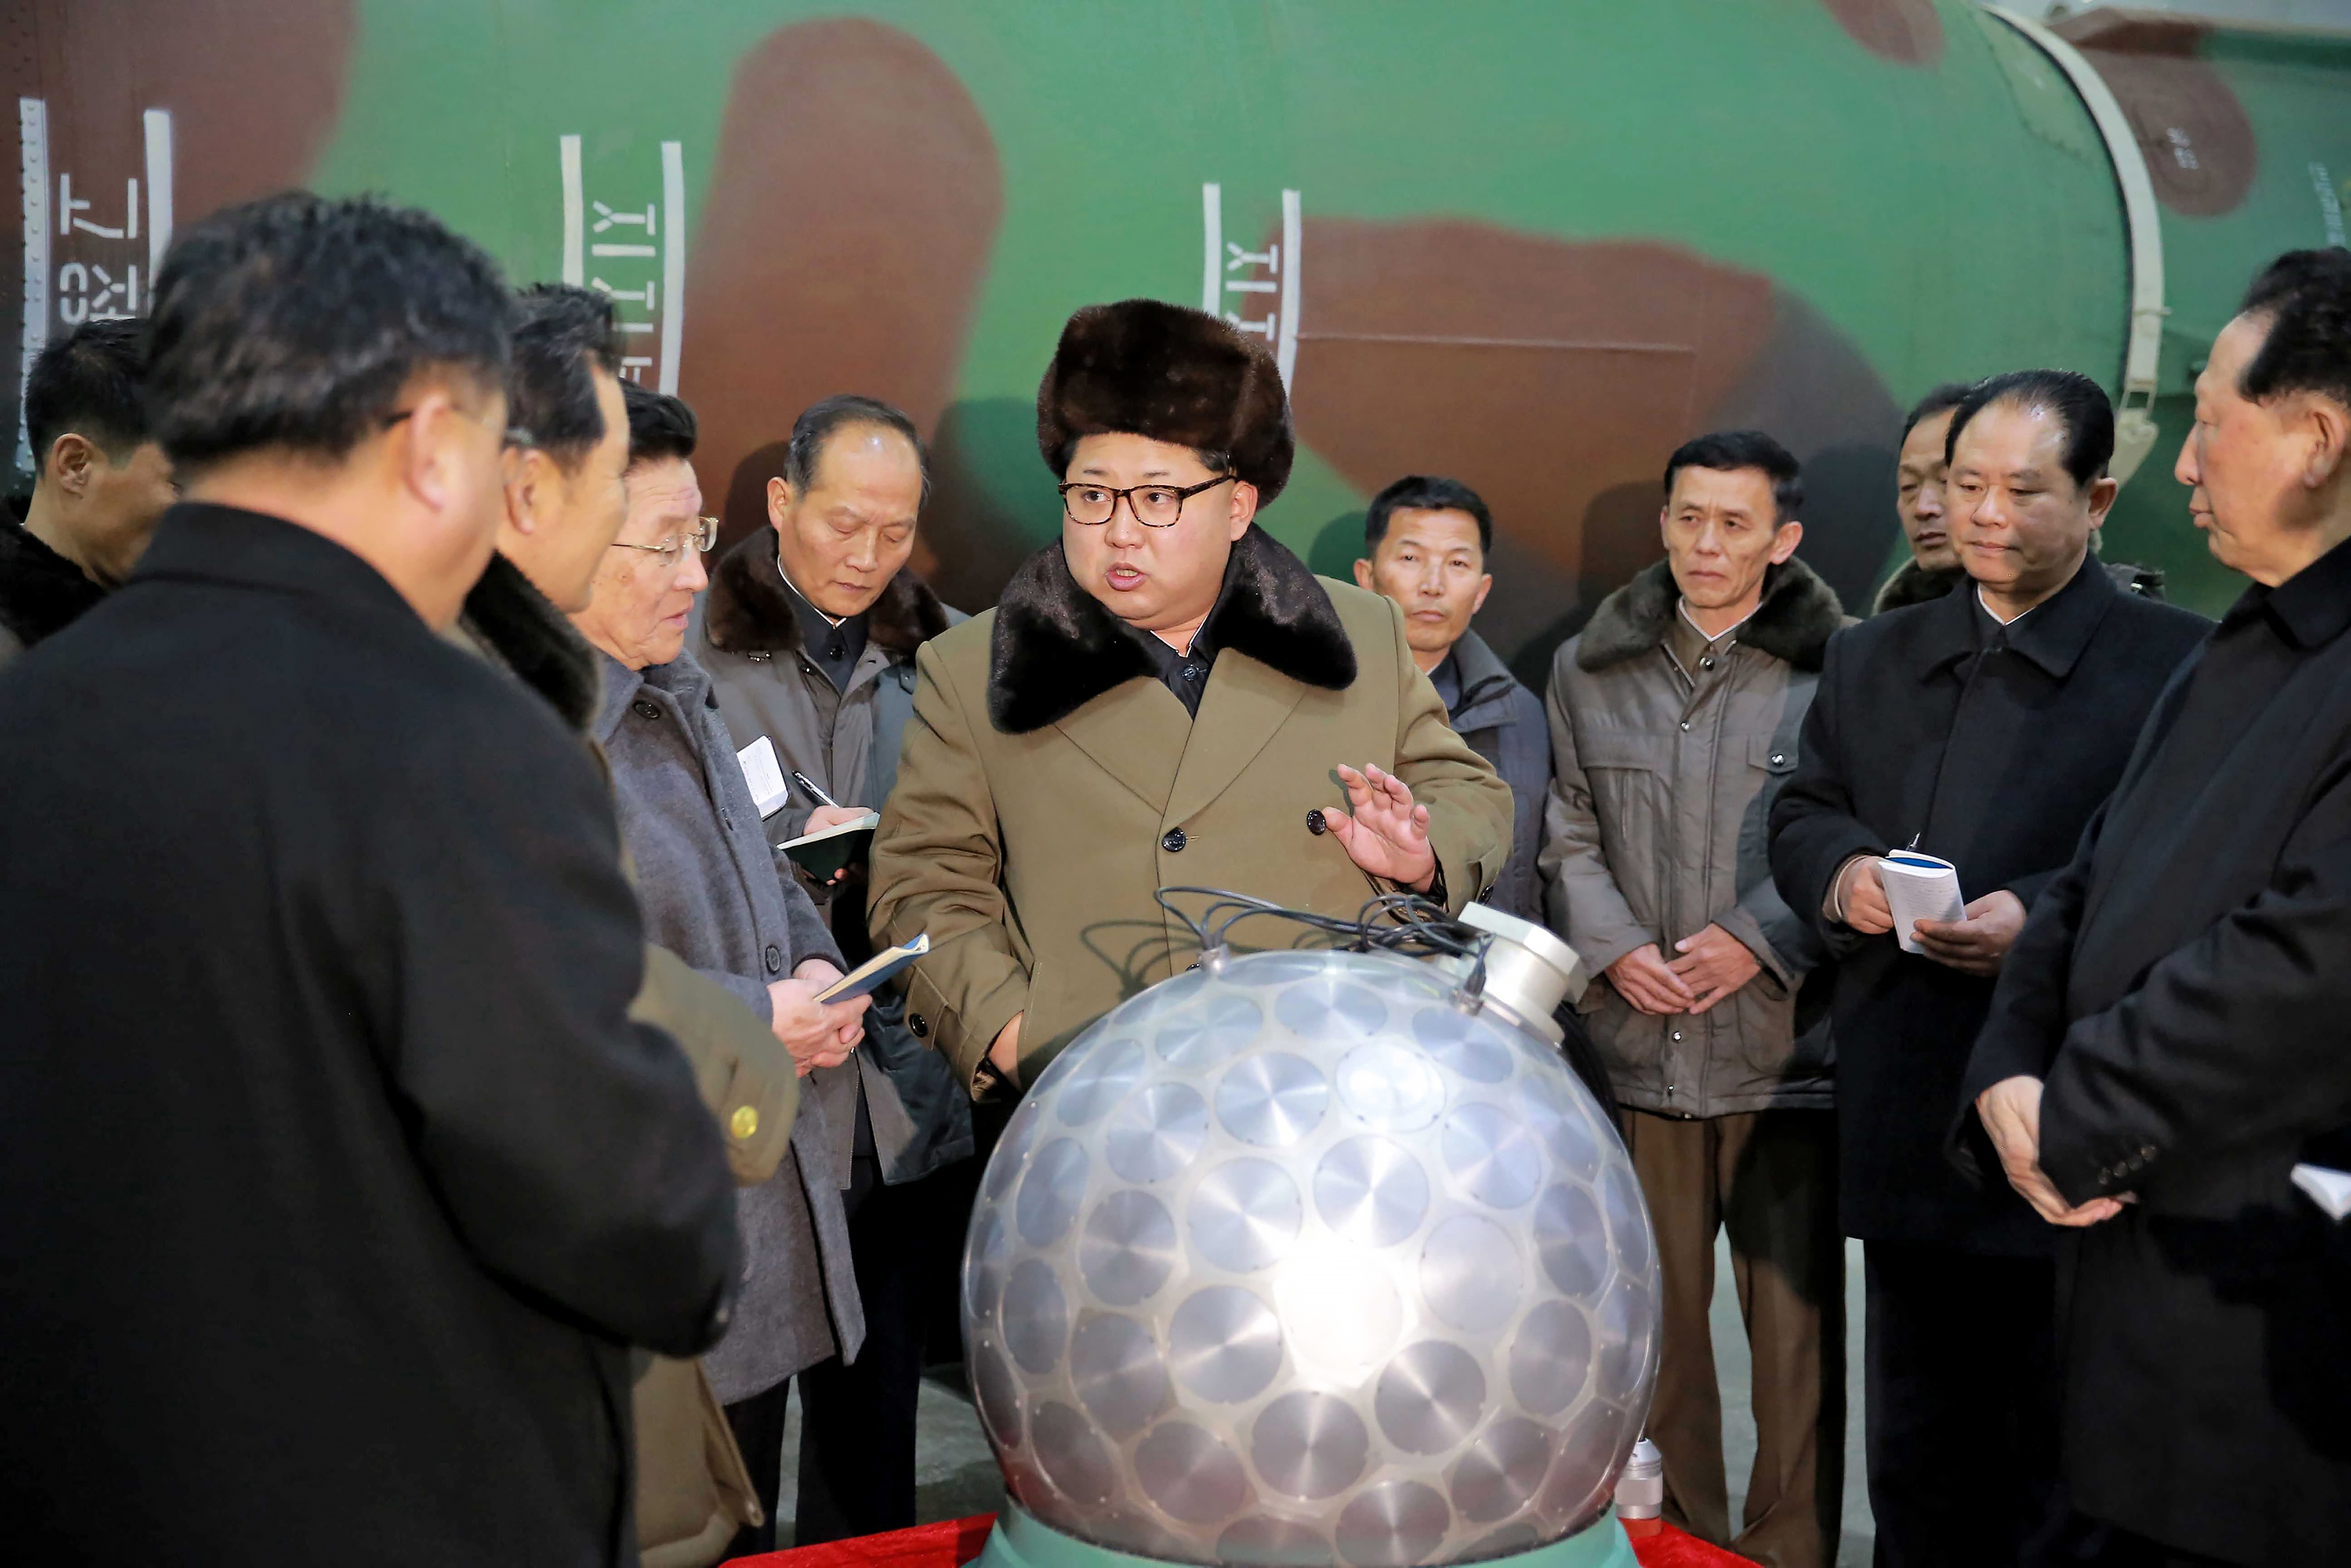 North Korean dictator Kim Jong-un appeared on North Korean television with what appears to be a spherical miniaturized nuclear weapon